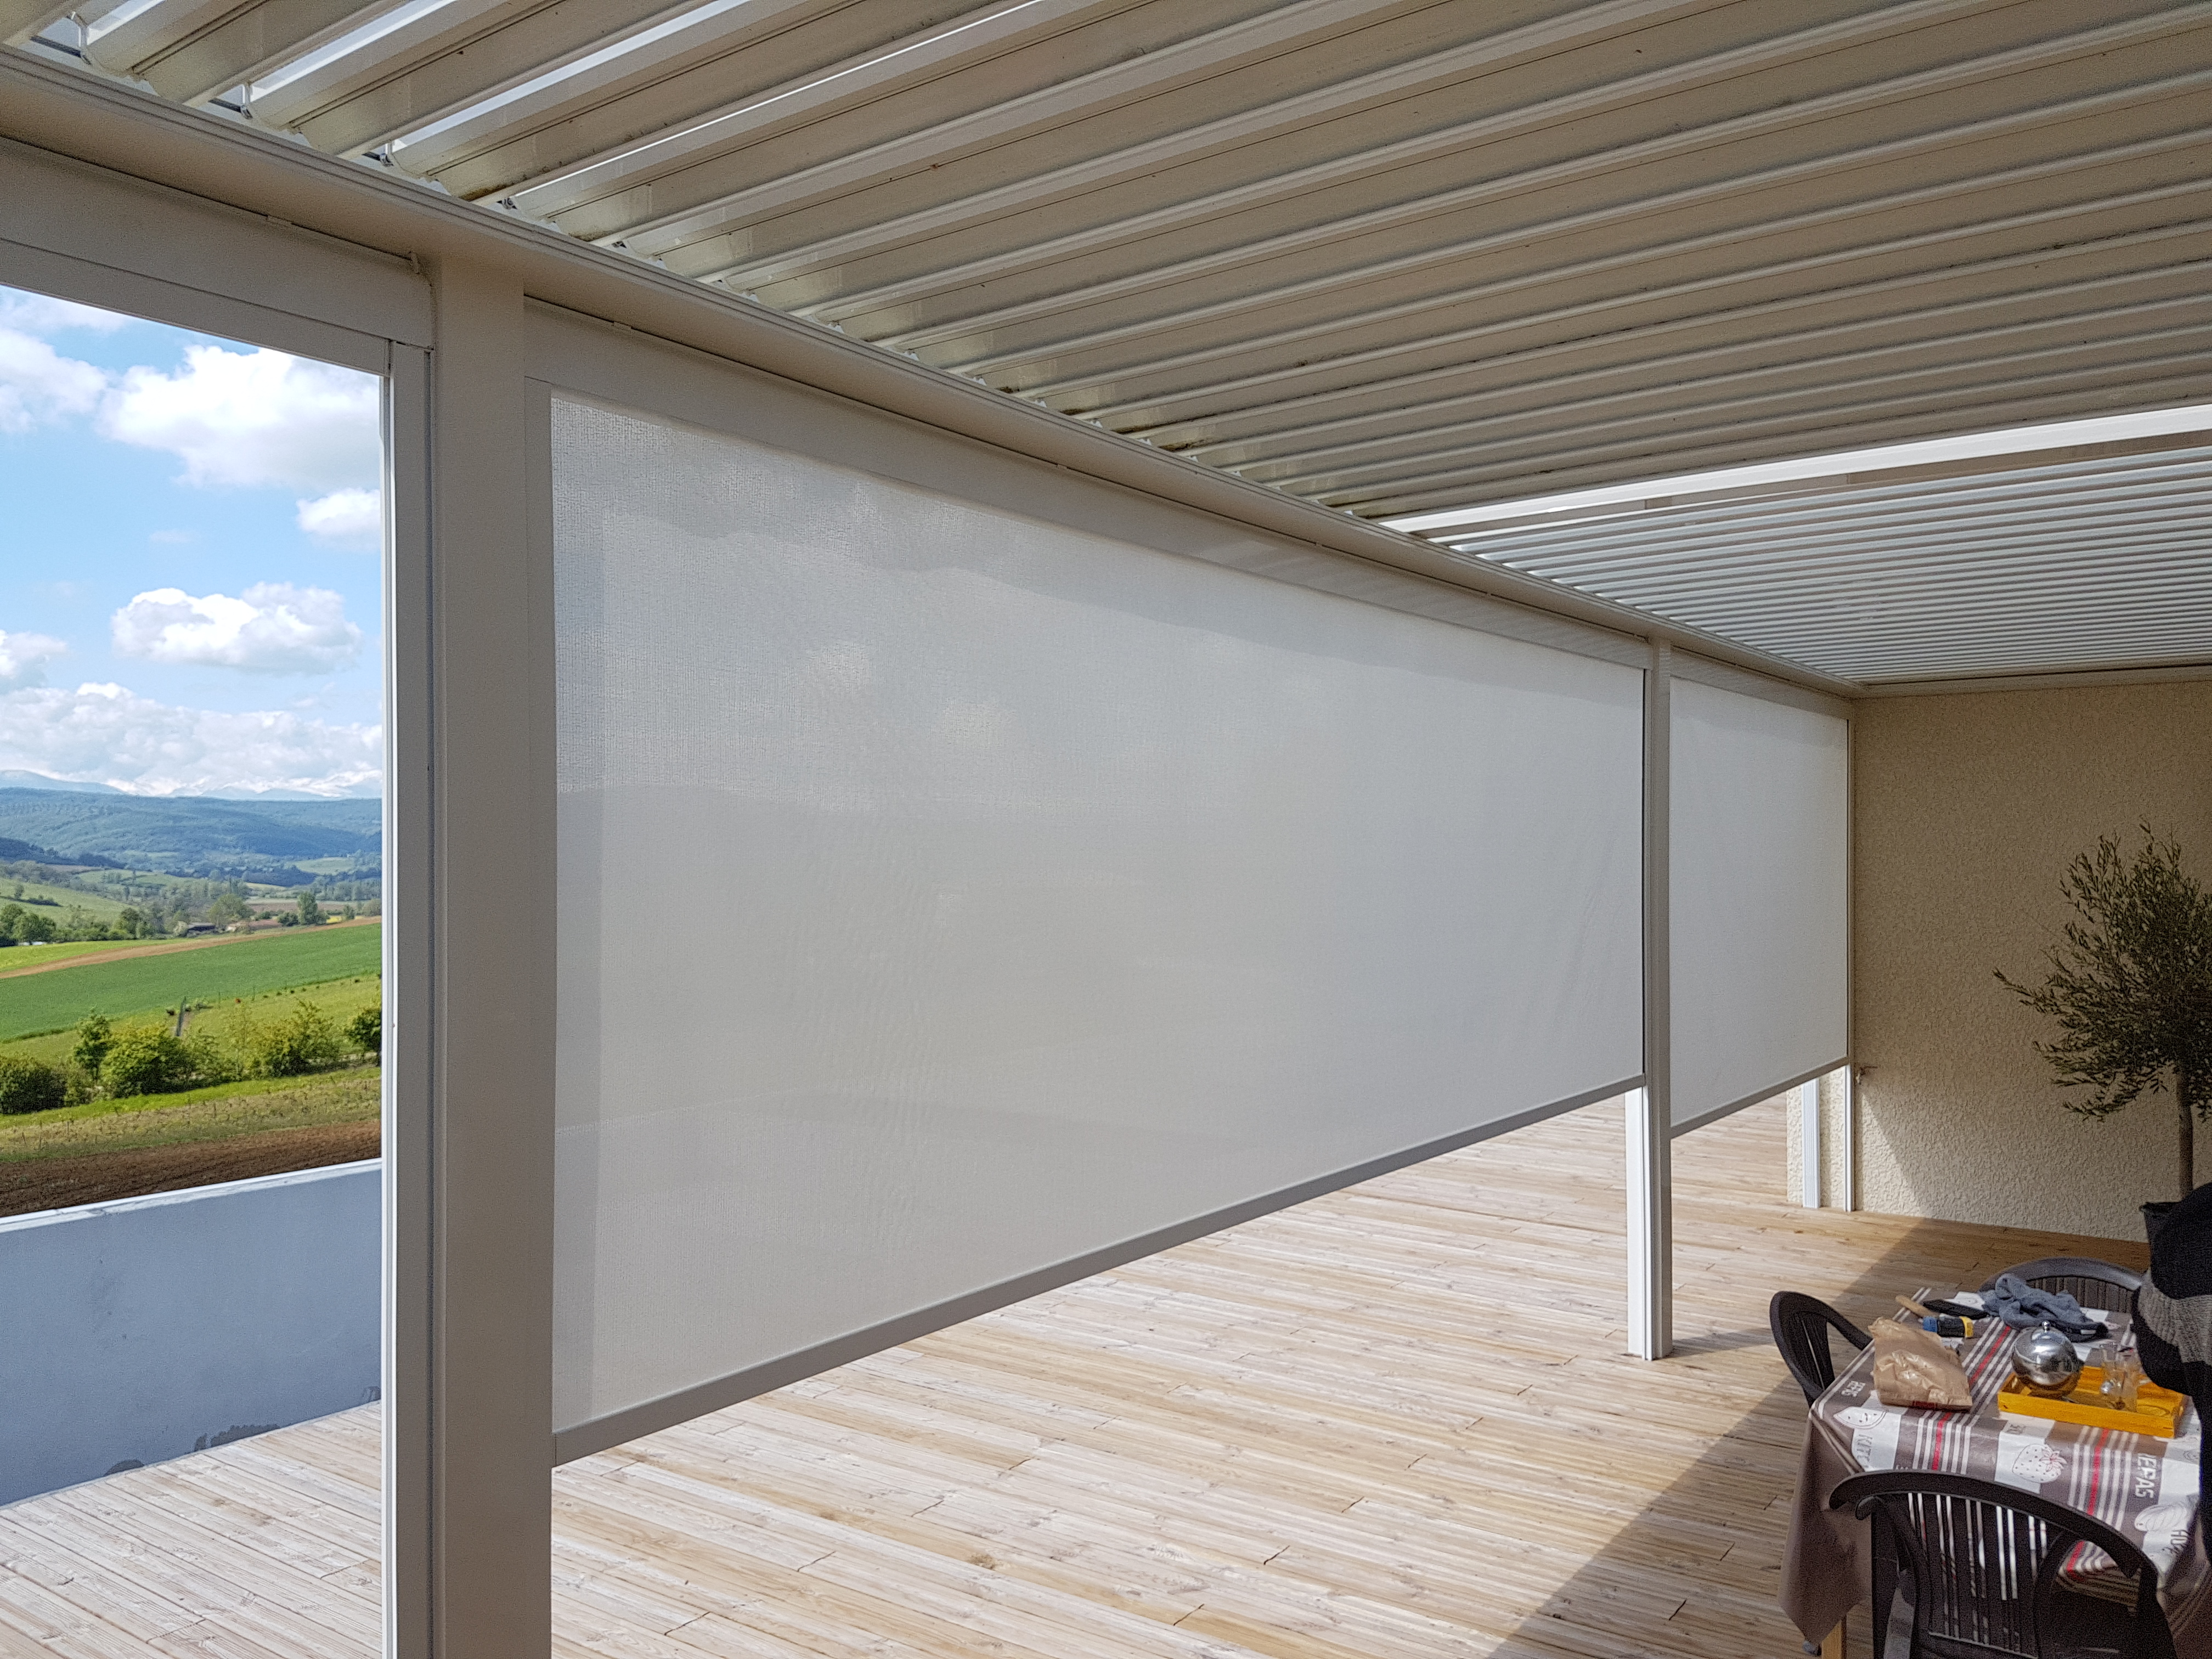 Store Transparent Pour Terrasse Store Anti Vent Terrasse Transparent Par Profilstores Sur Mesure